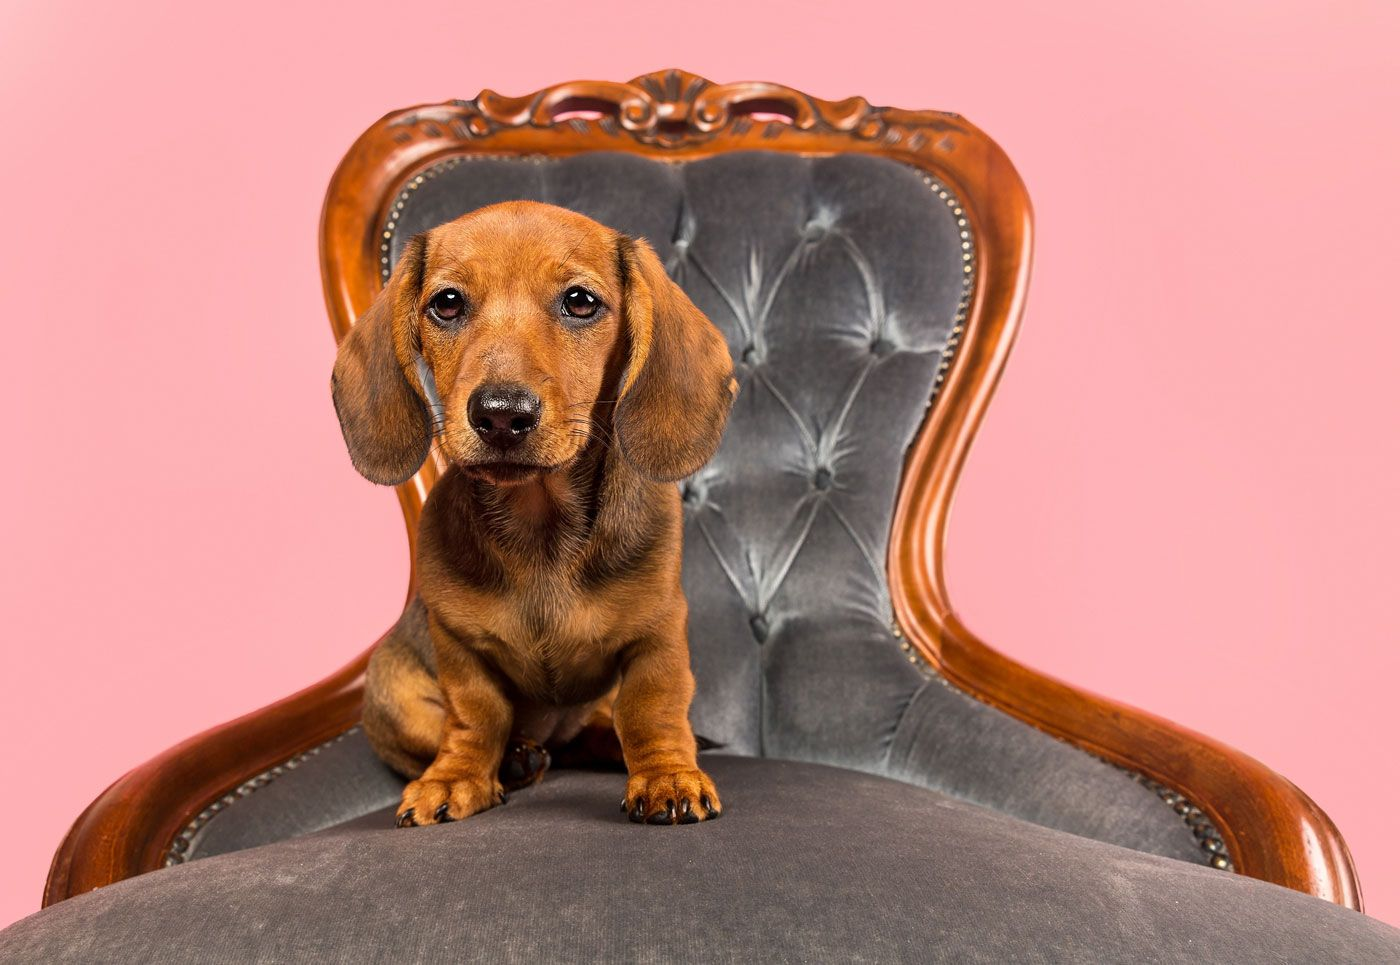 Behind The Scenes At A Mutley S Snaps Studio Pet Photography